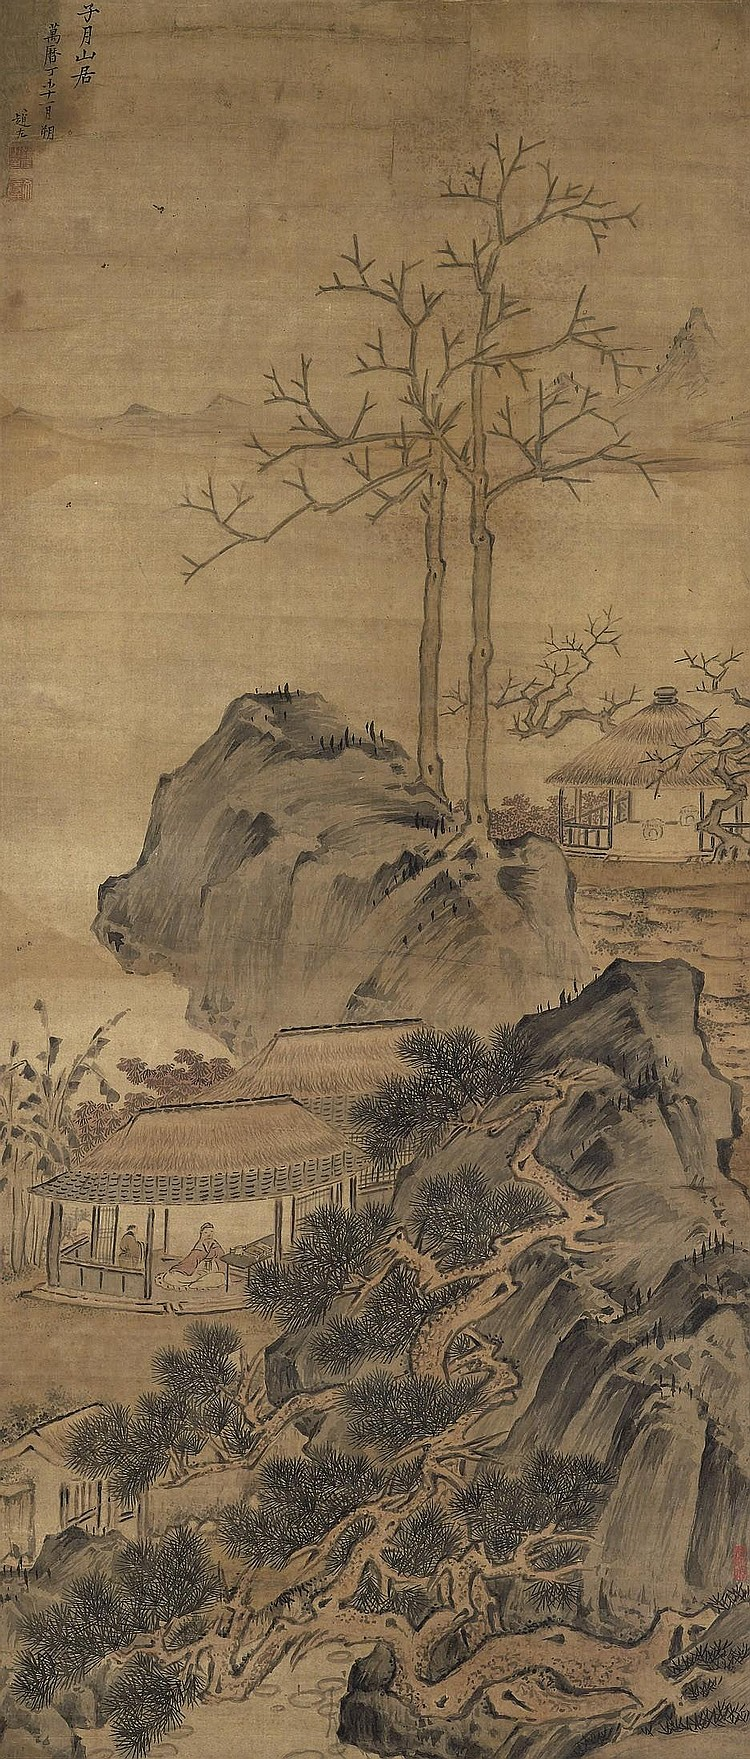 ZHAO ZUO (1570-AFTER 1633)